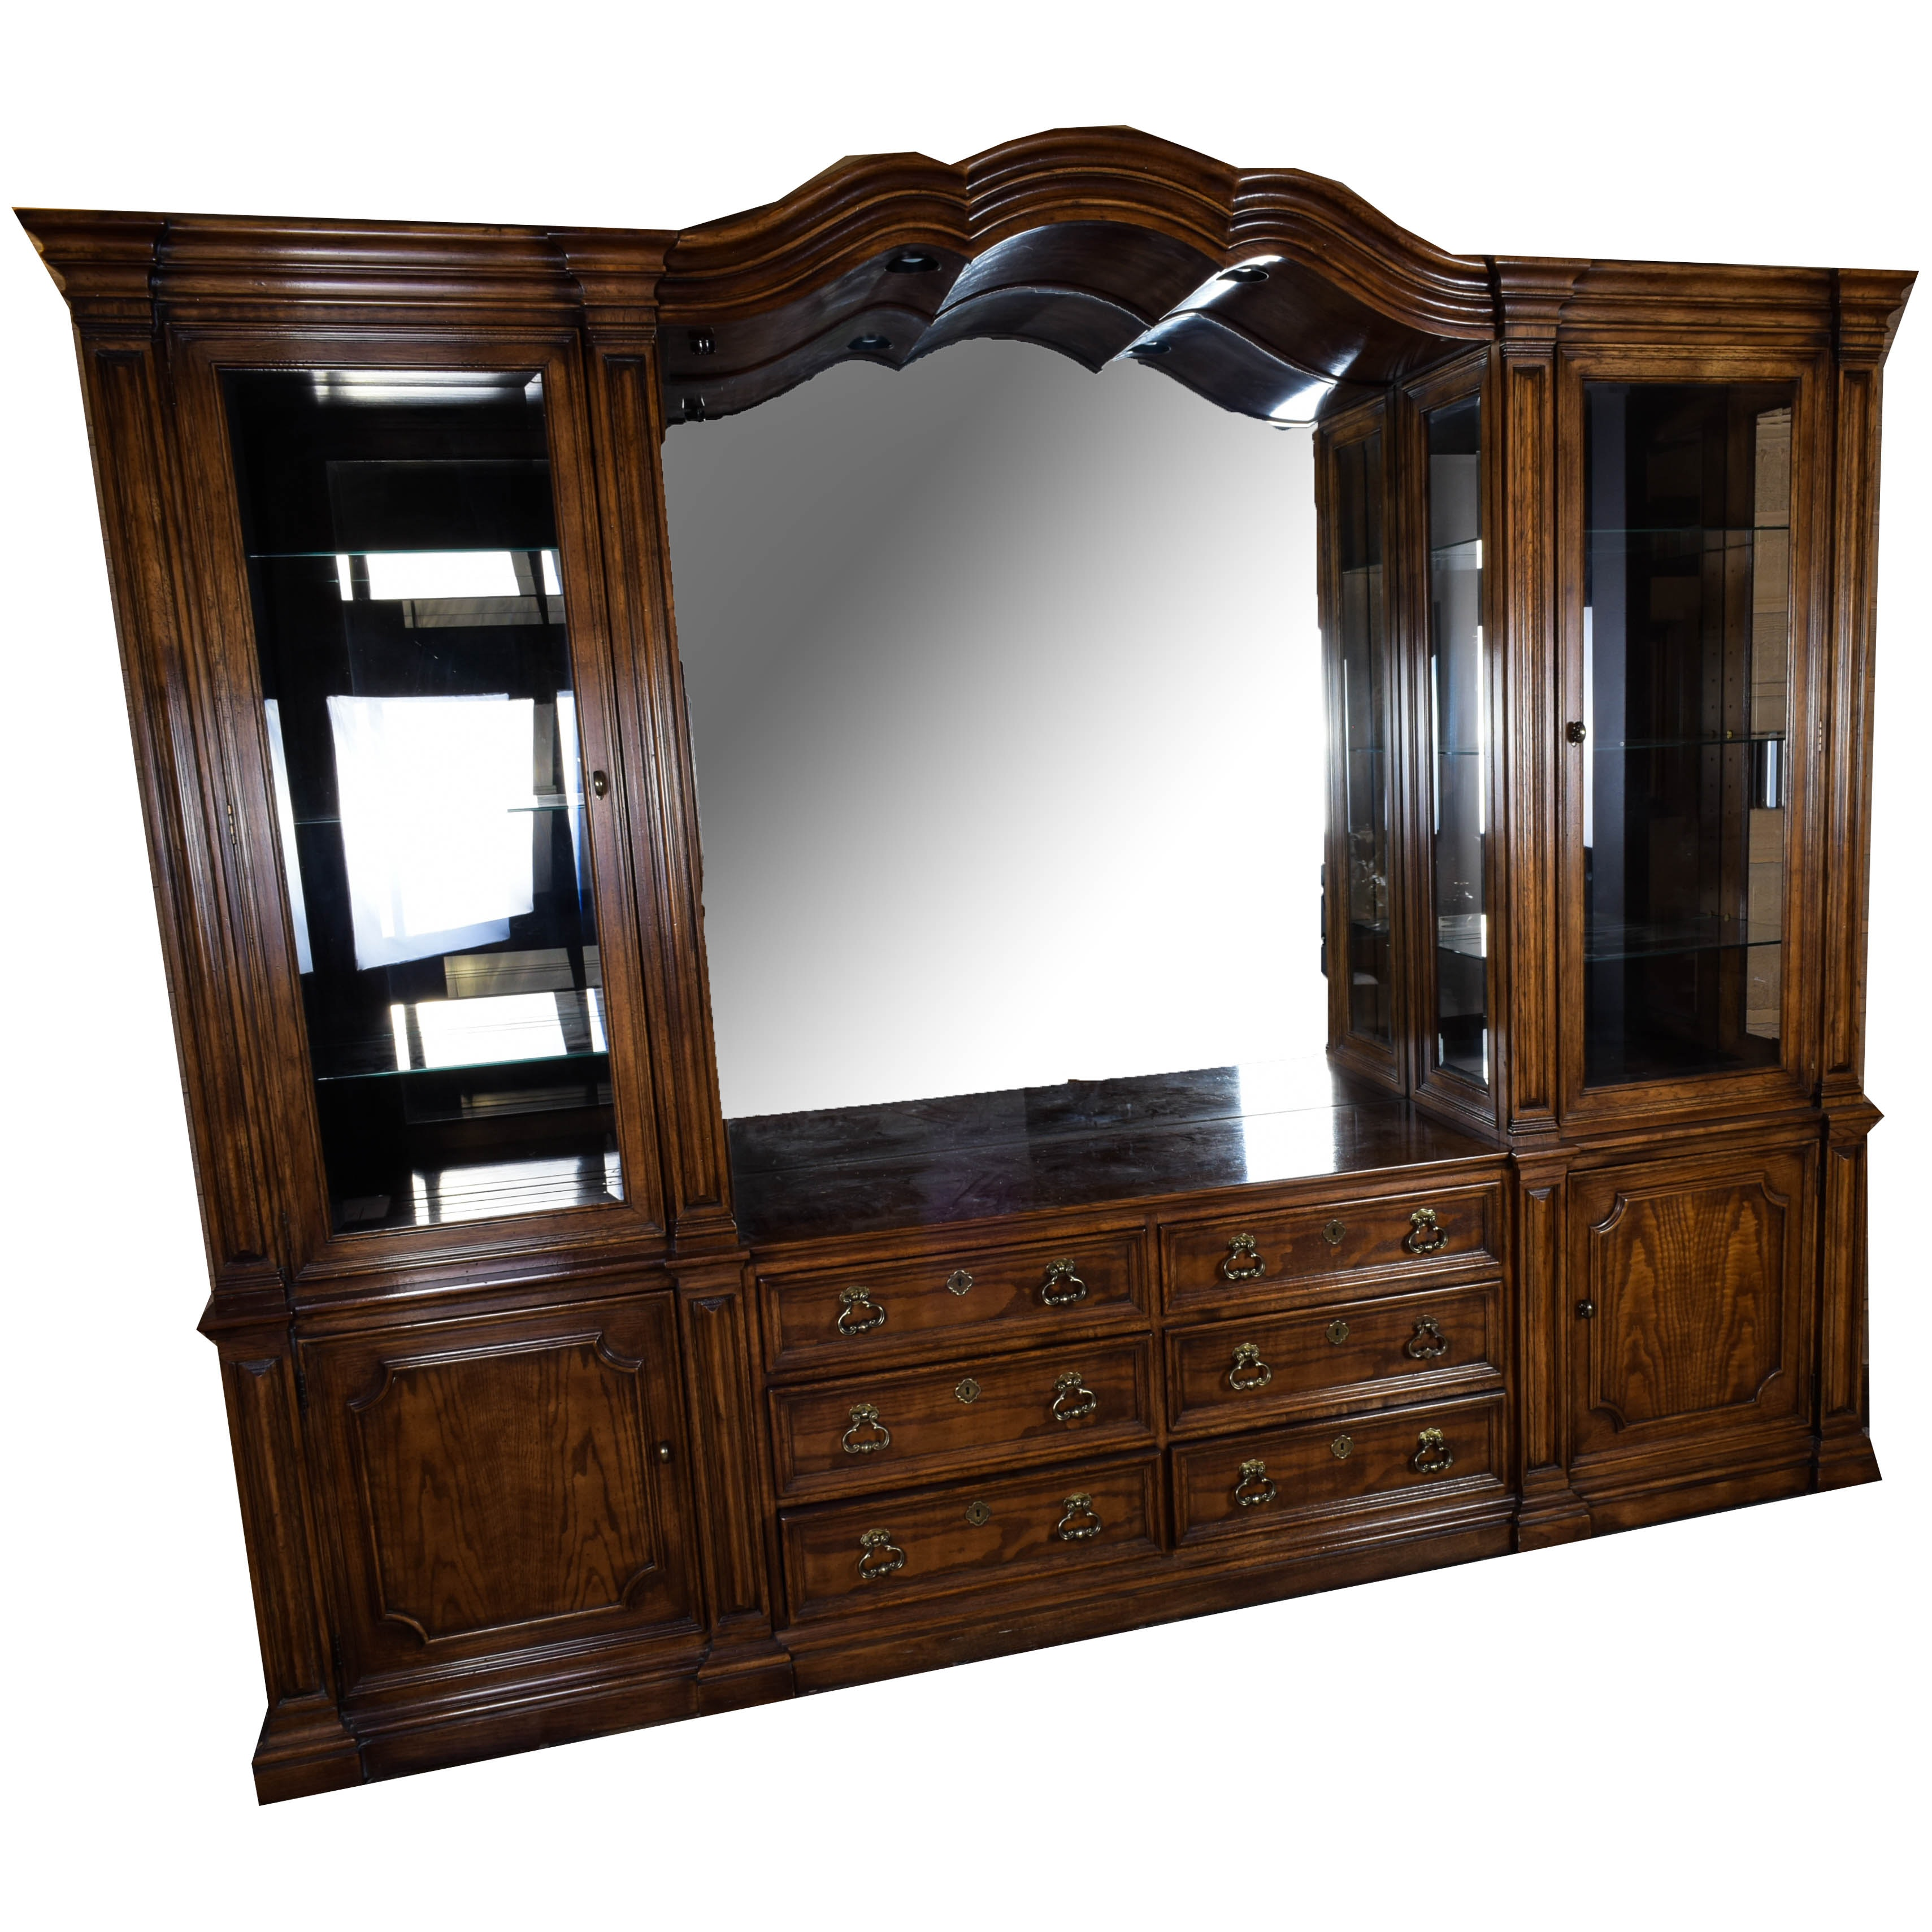 henredon china cabinet with mirror and lighted display : ebth